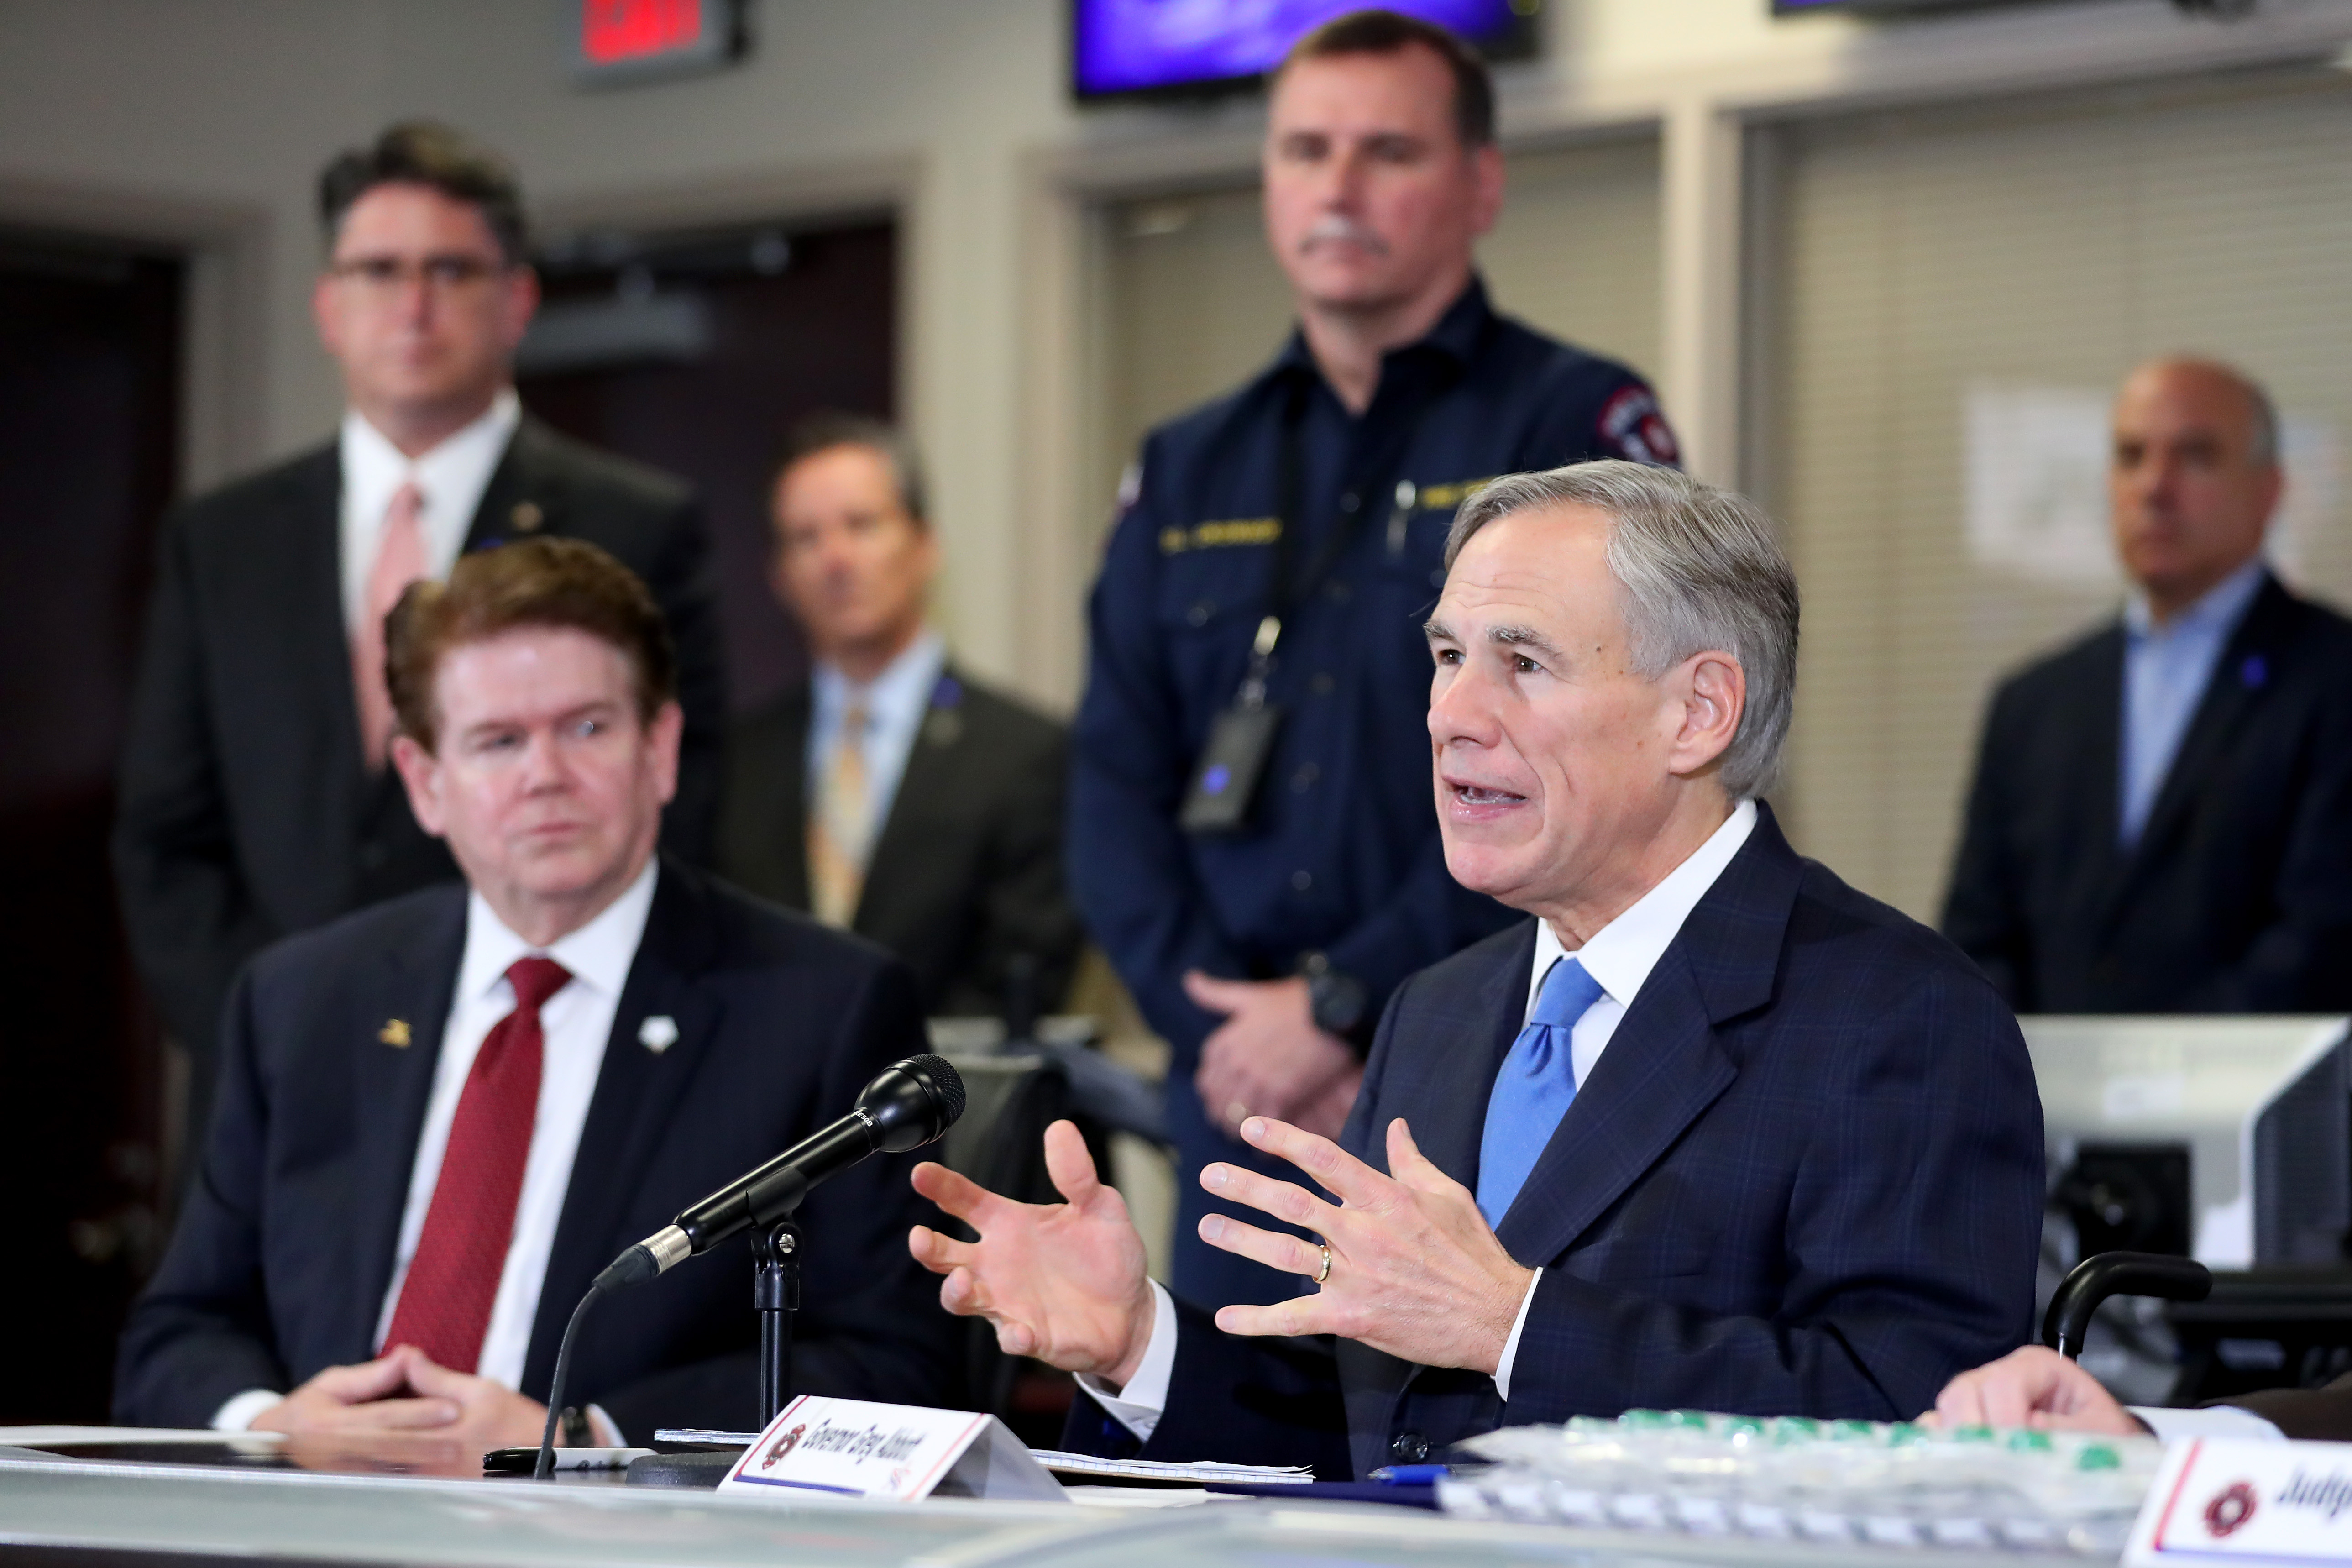 Governors are starting to close their borders. The implications are staggering.